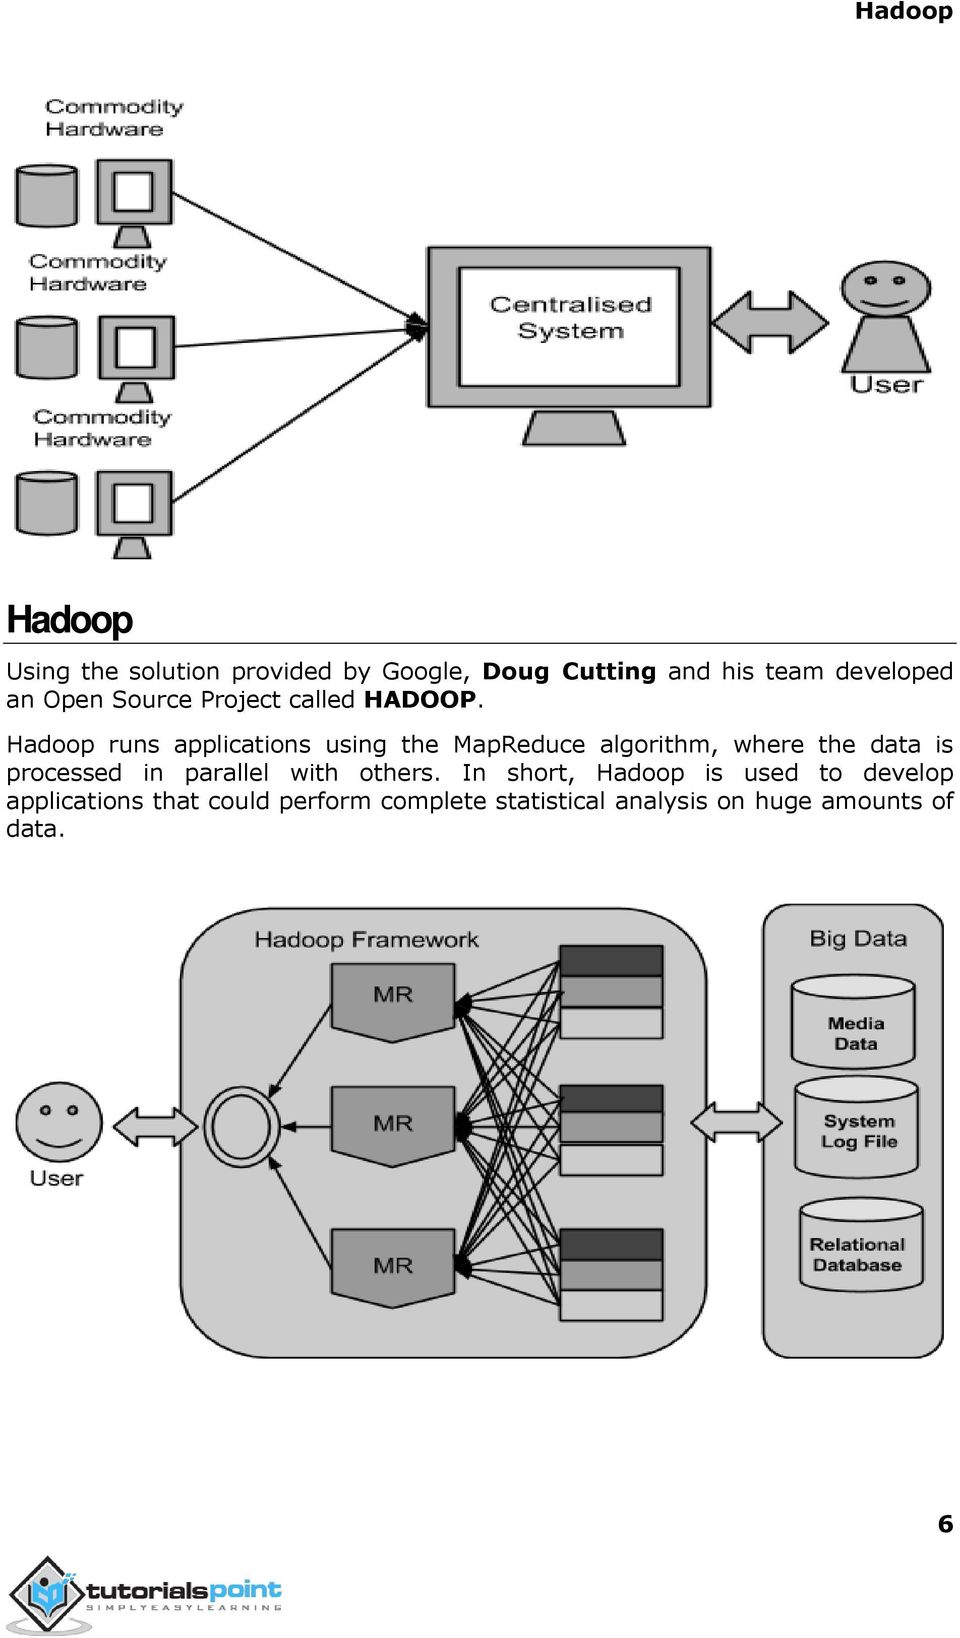 Hadoop runs applications using the MapReduce algorithm, where the data is processed in